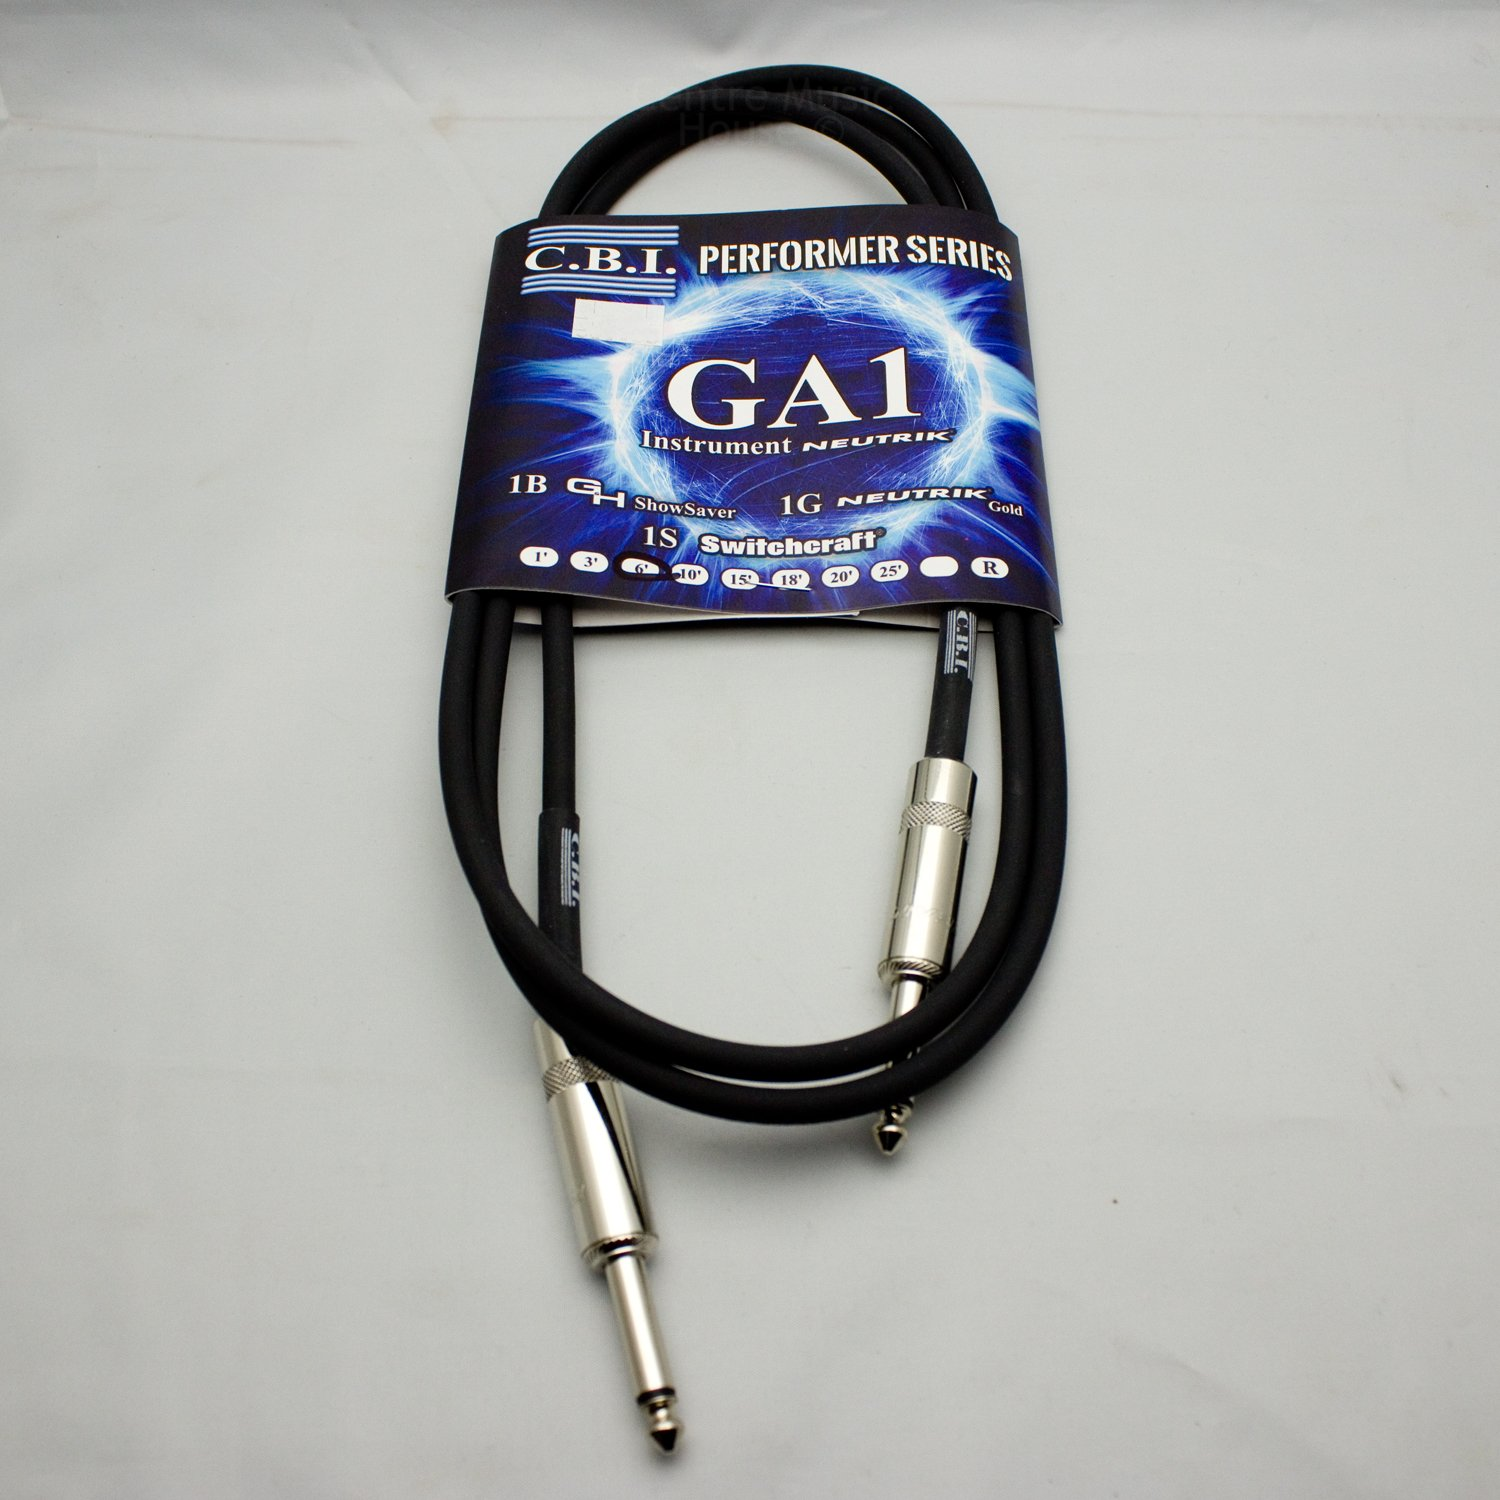 CBI Performer Series GA1 Guitar Cable, 6'